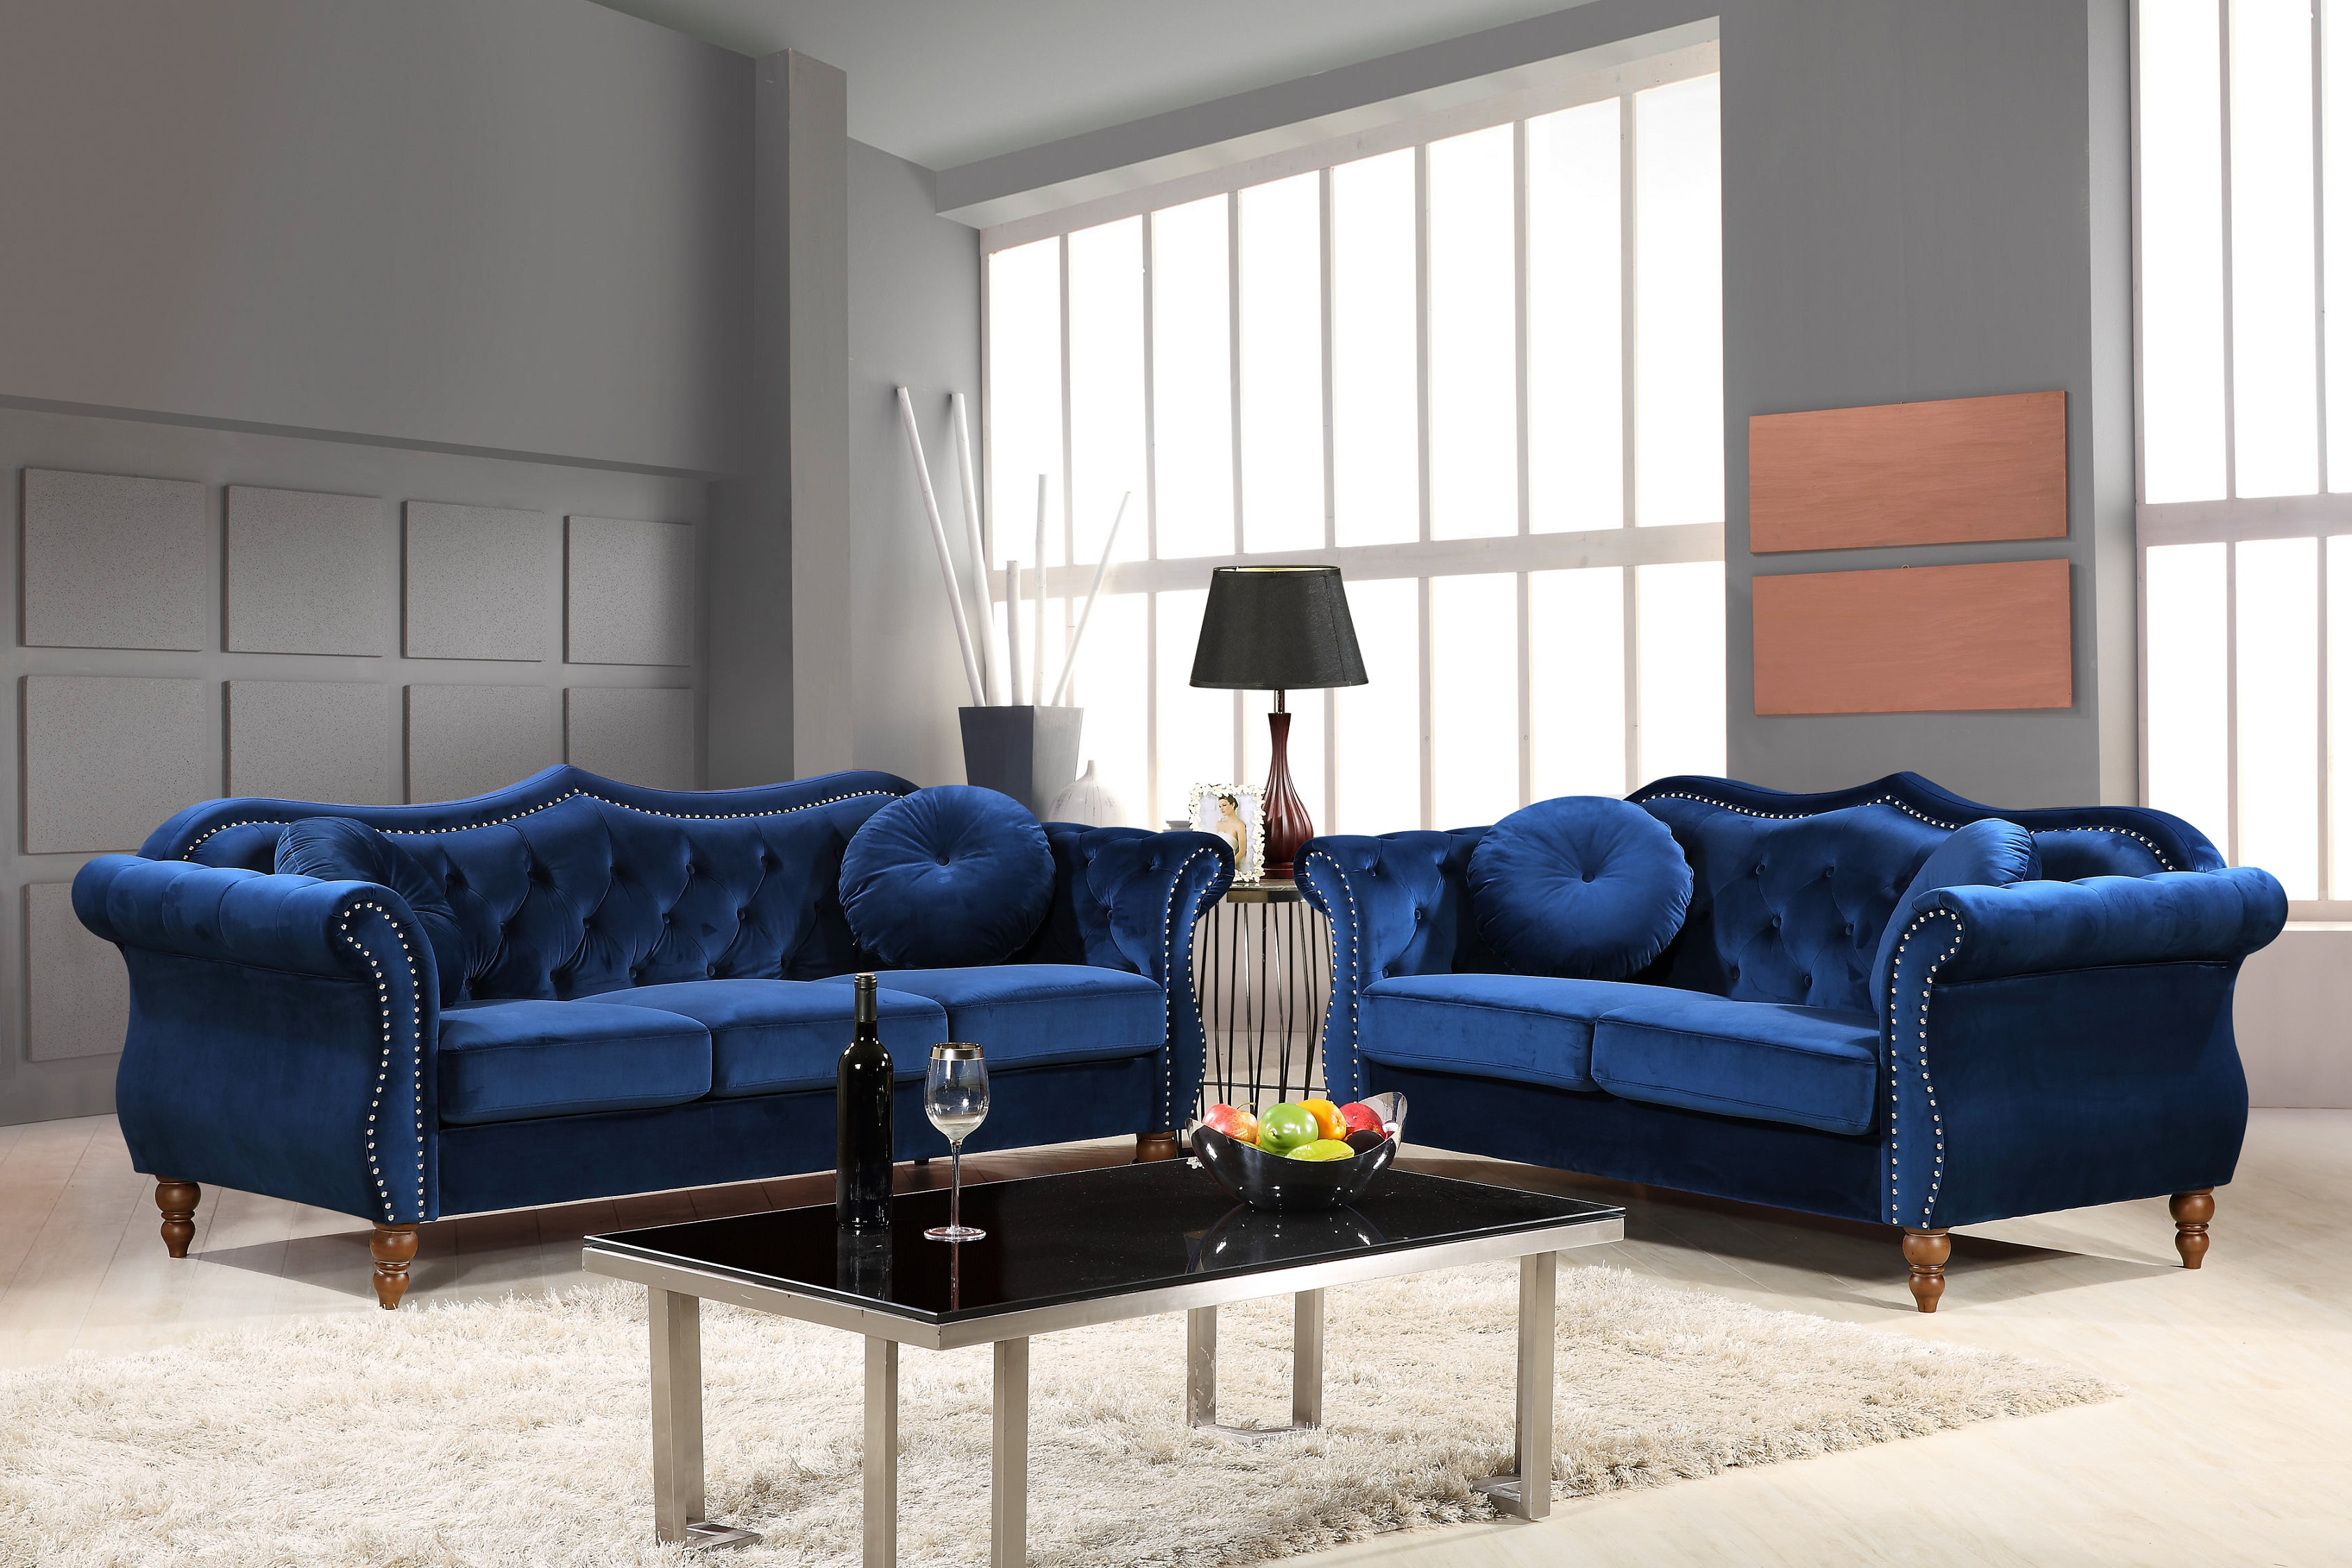 Us pride furniture carbon classic nail head chesterfield 2 piece living room set blue walmart com